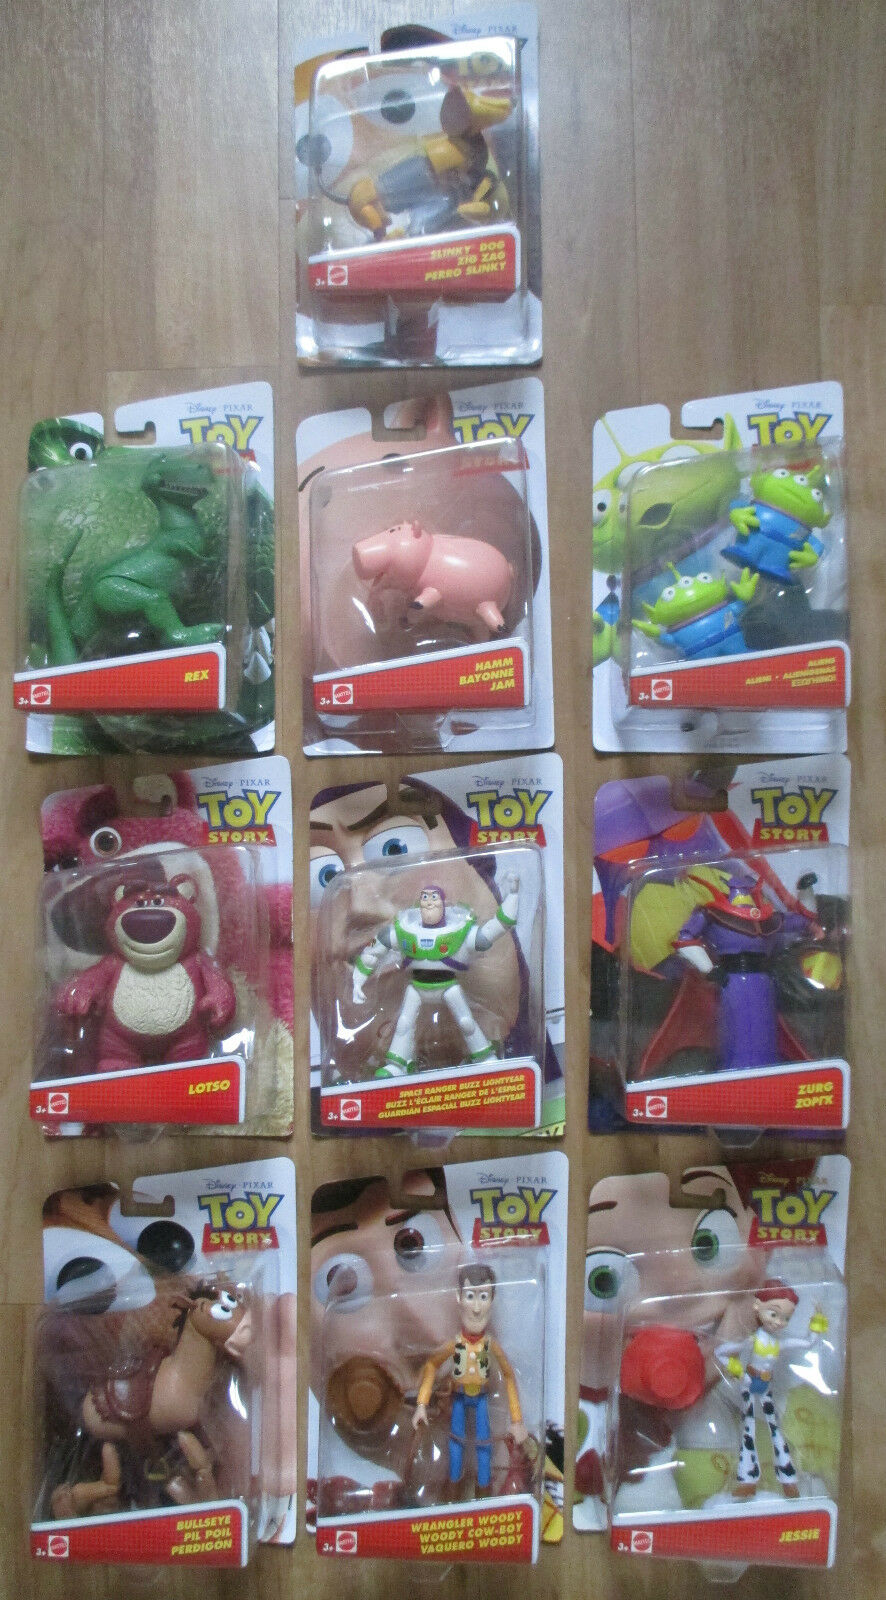 Toy Story Figures Full Set of 10 including Hamm ALL BRAND NEW